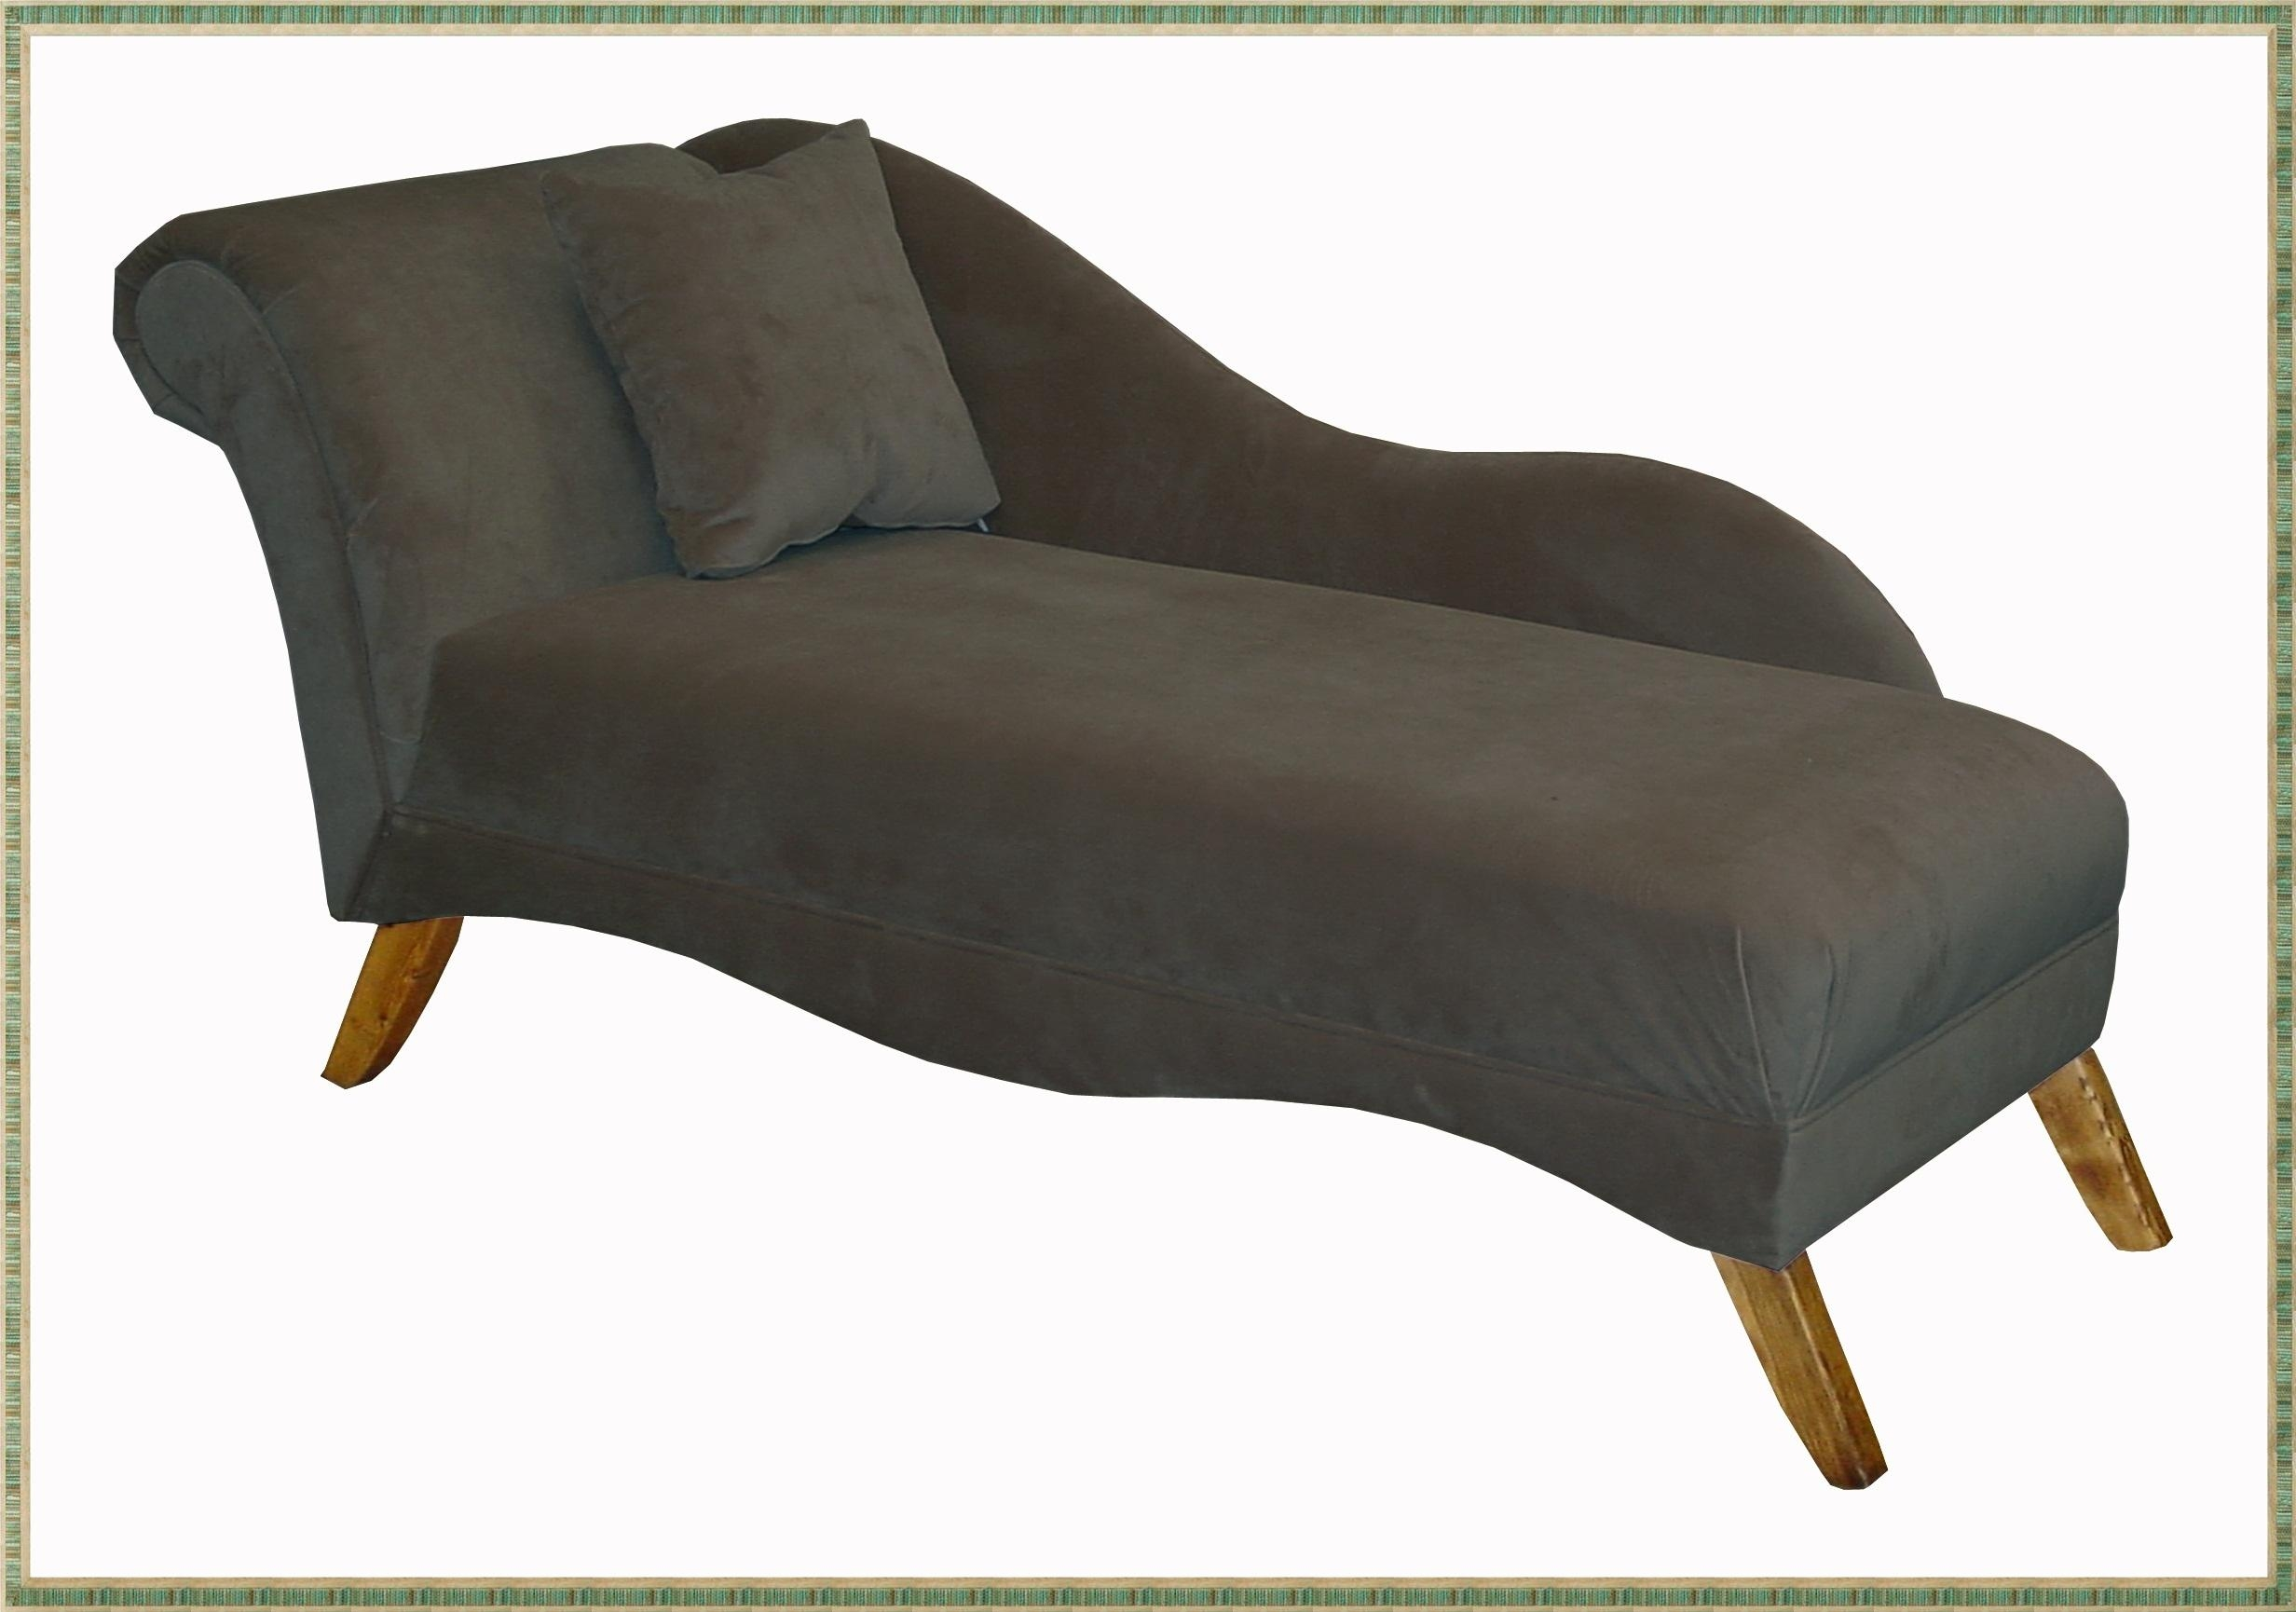 Chaise Lounge Slipcover | Home Decorations Ideas Regarding Slipcovered Chaises (View 7 of 20)